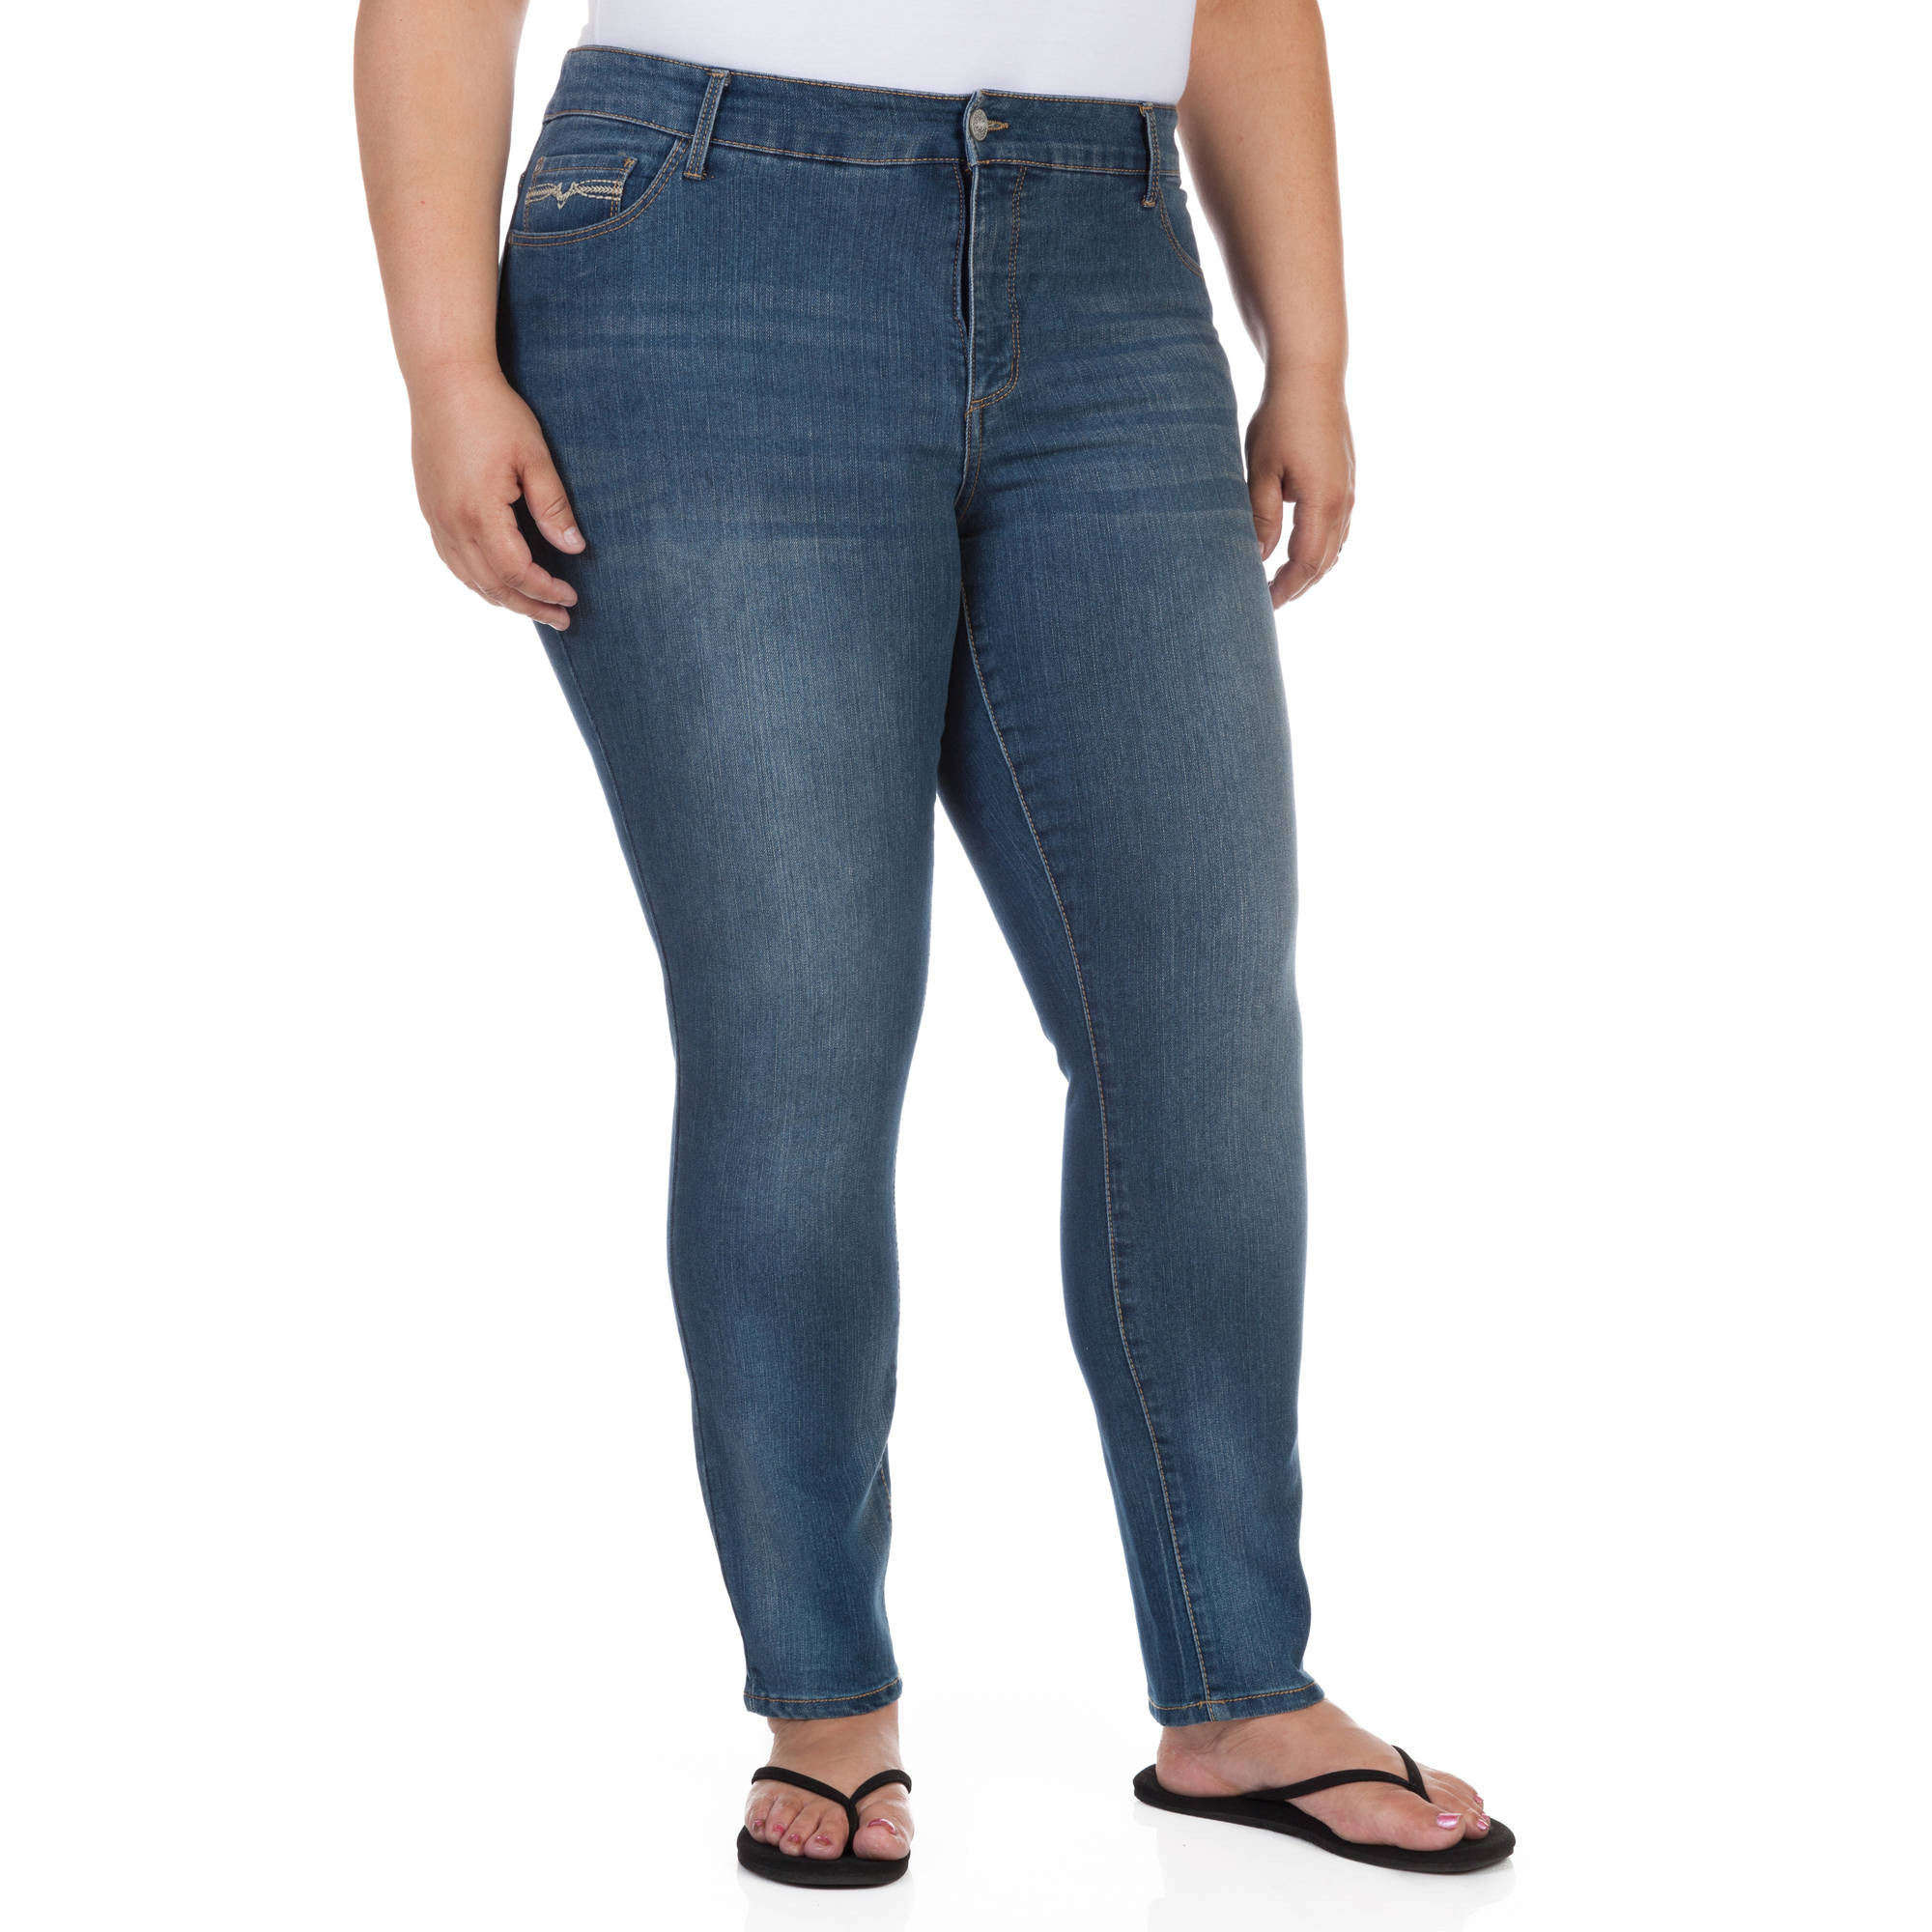 Most Comfortable Plus Size Jeans - Jeans Am